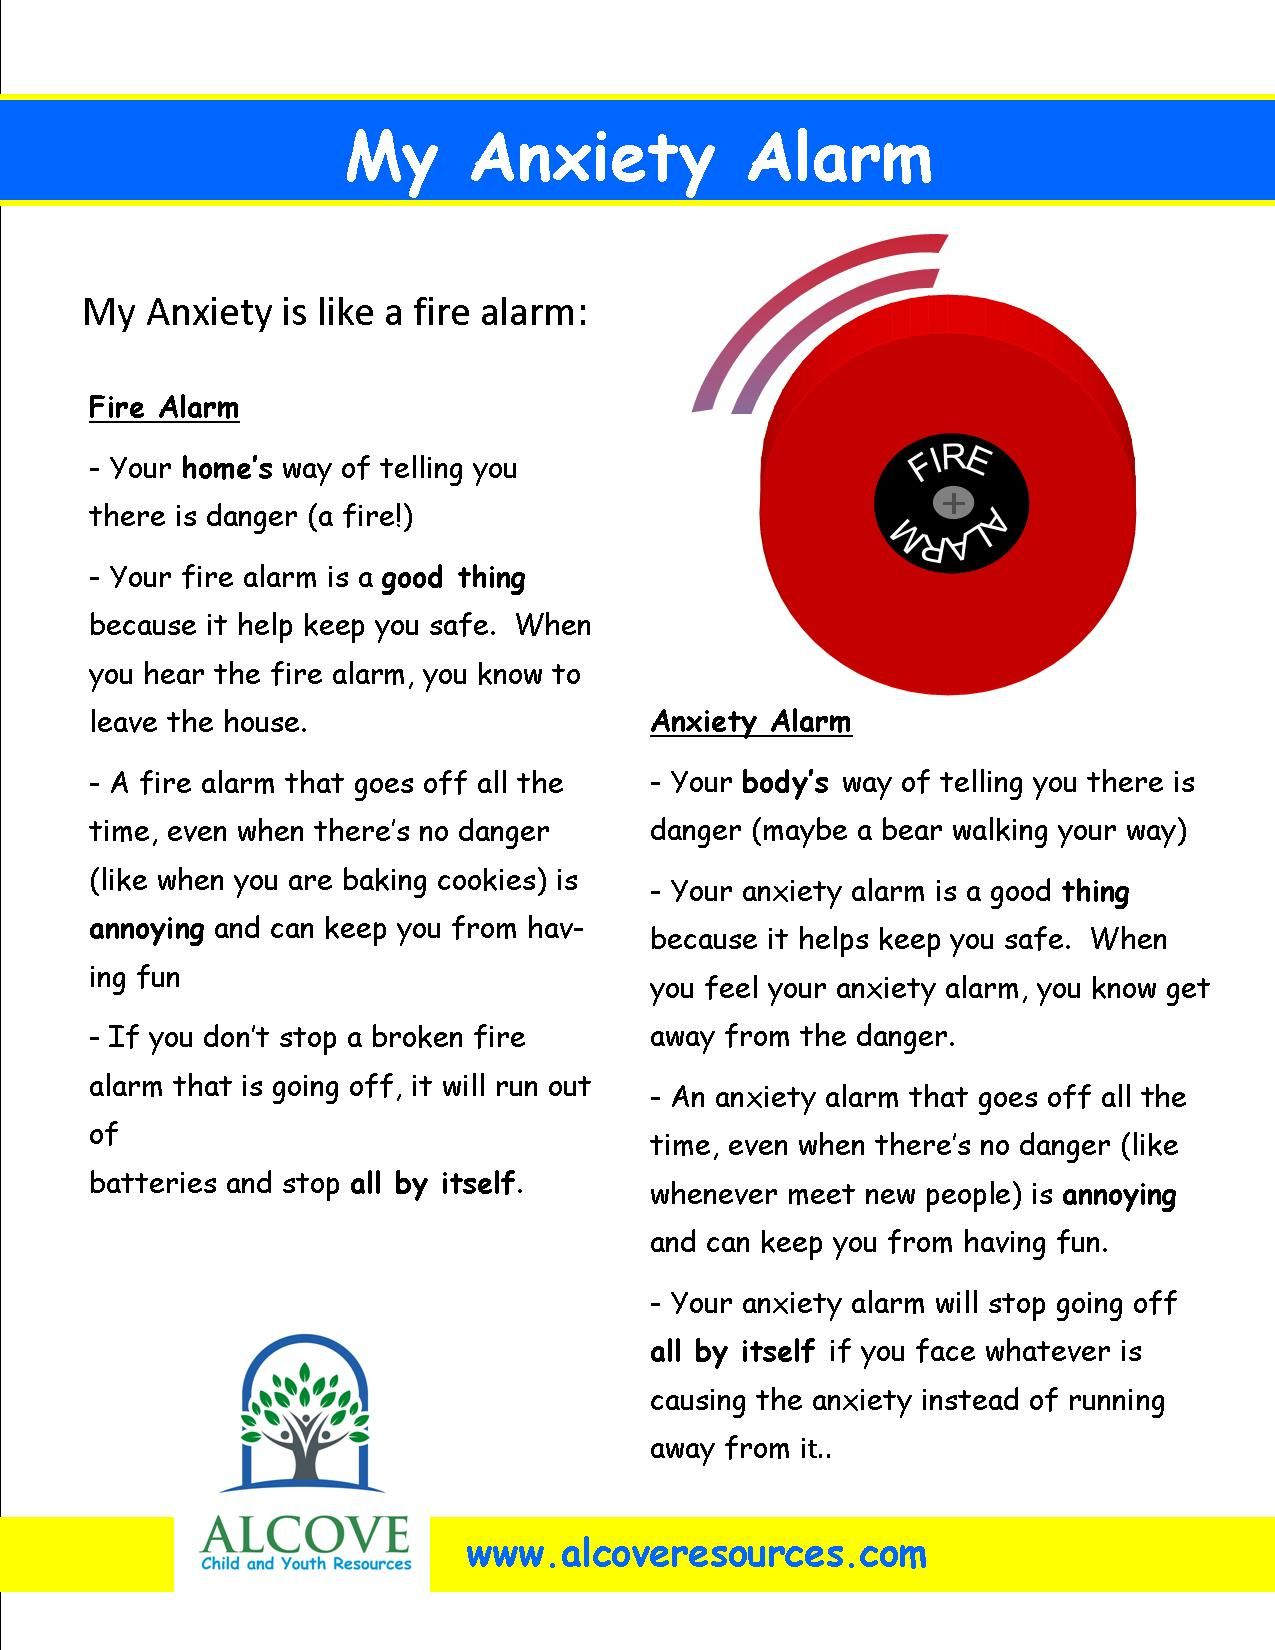 worksheet Therapy Worksheets For Kids my anxiety alarm worksheet for kids alcove child and youth resources